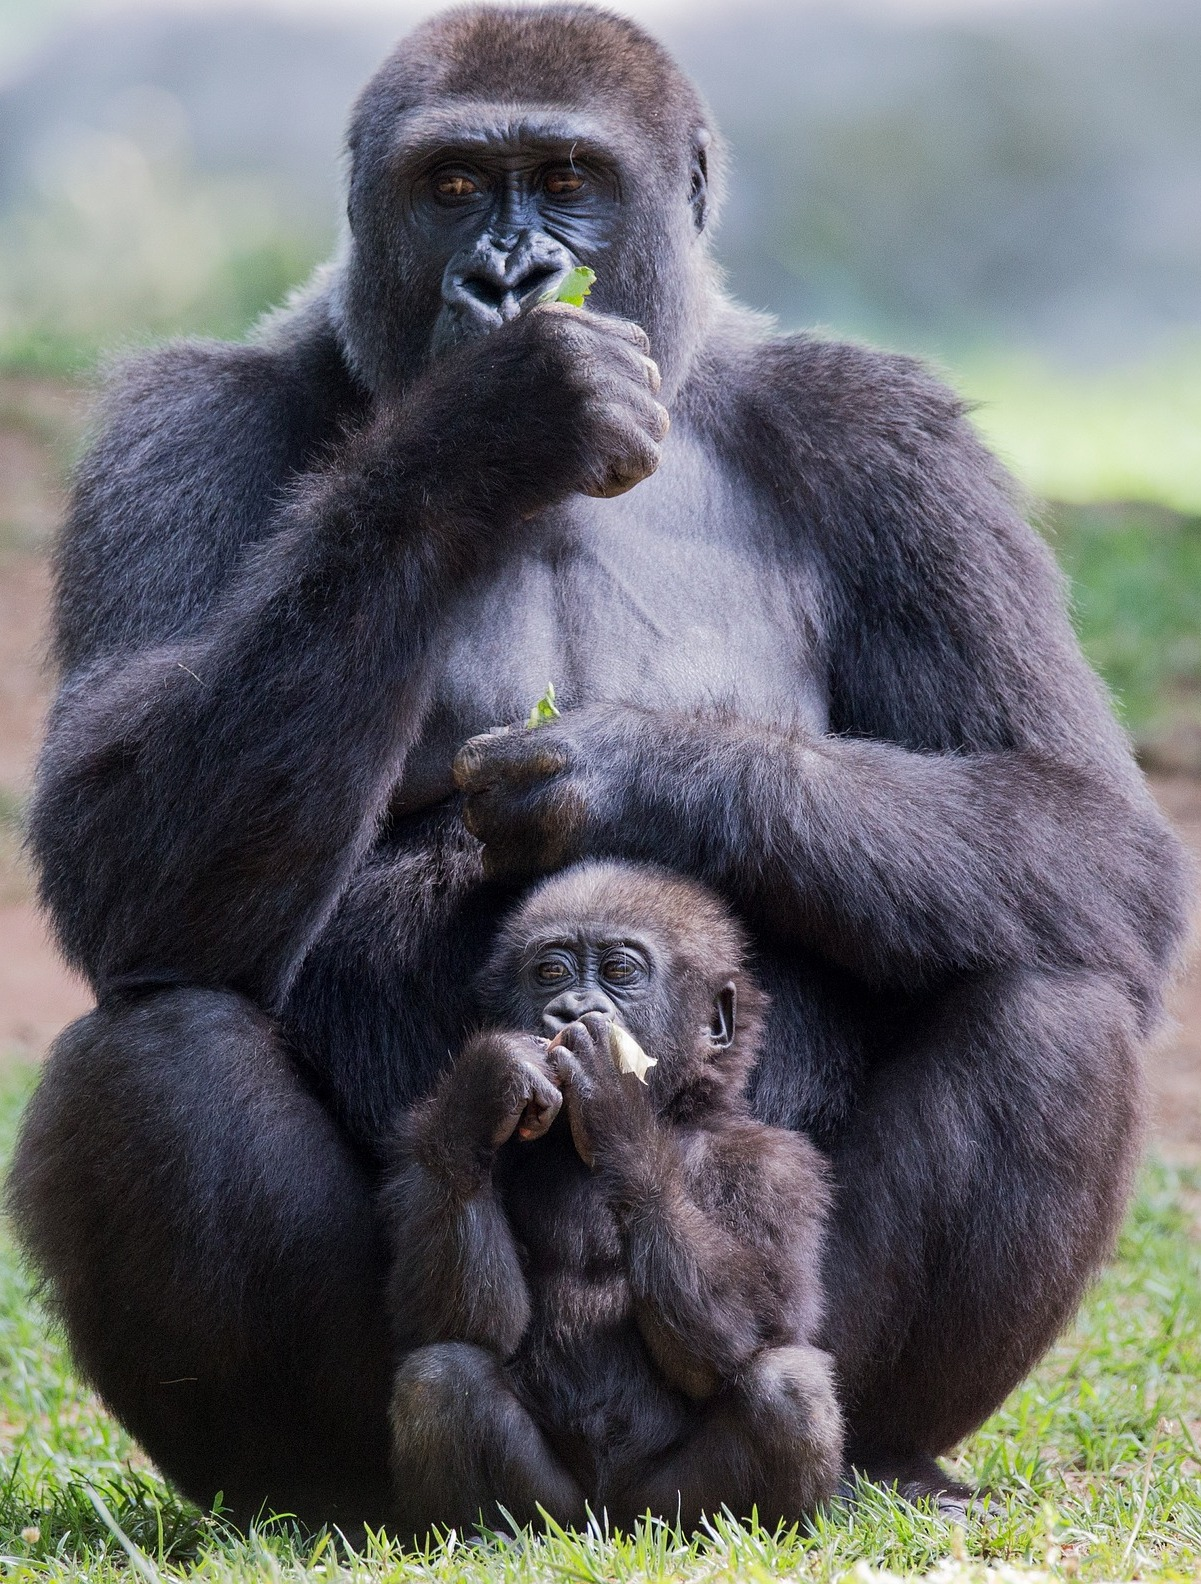 Picture of a gorilla and child eating.